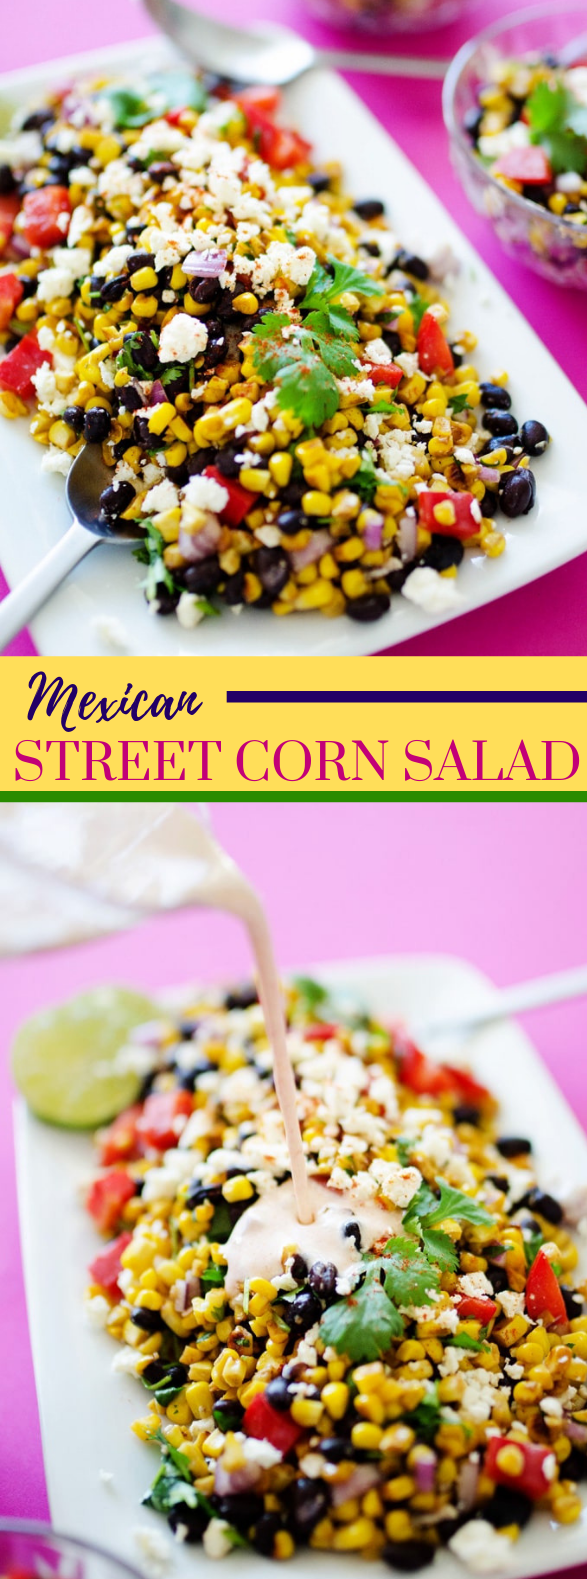 MEXICAN STREET CORN SALAD #vegetarian #mexicanfood